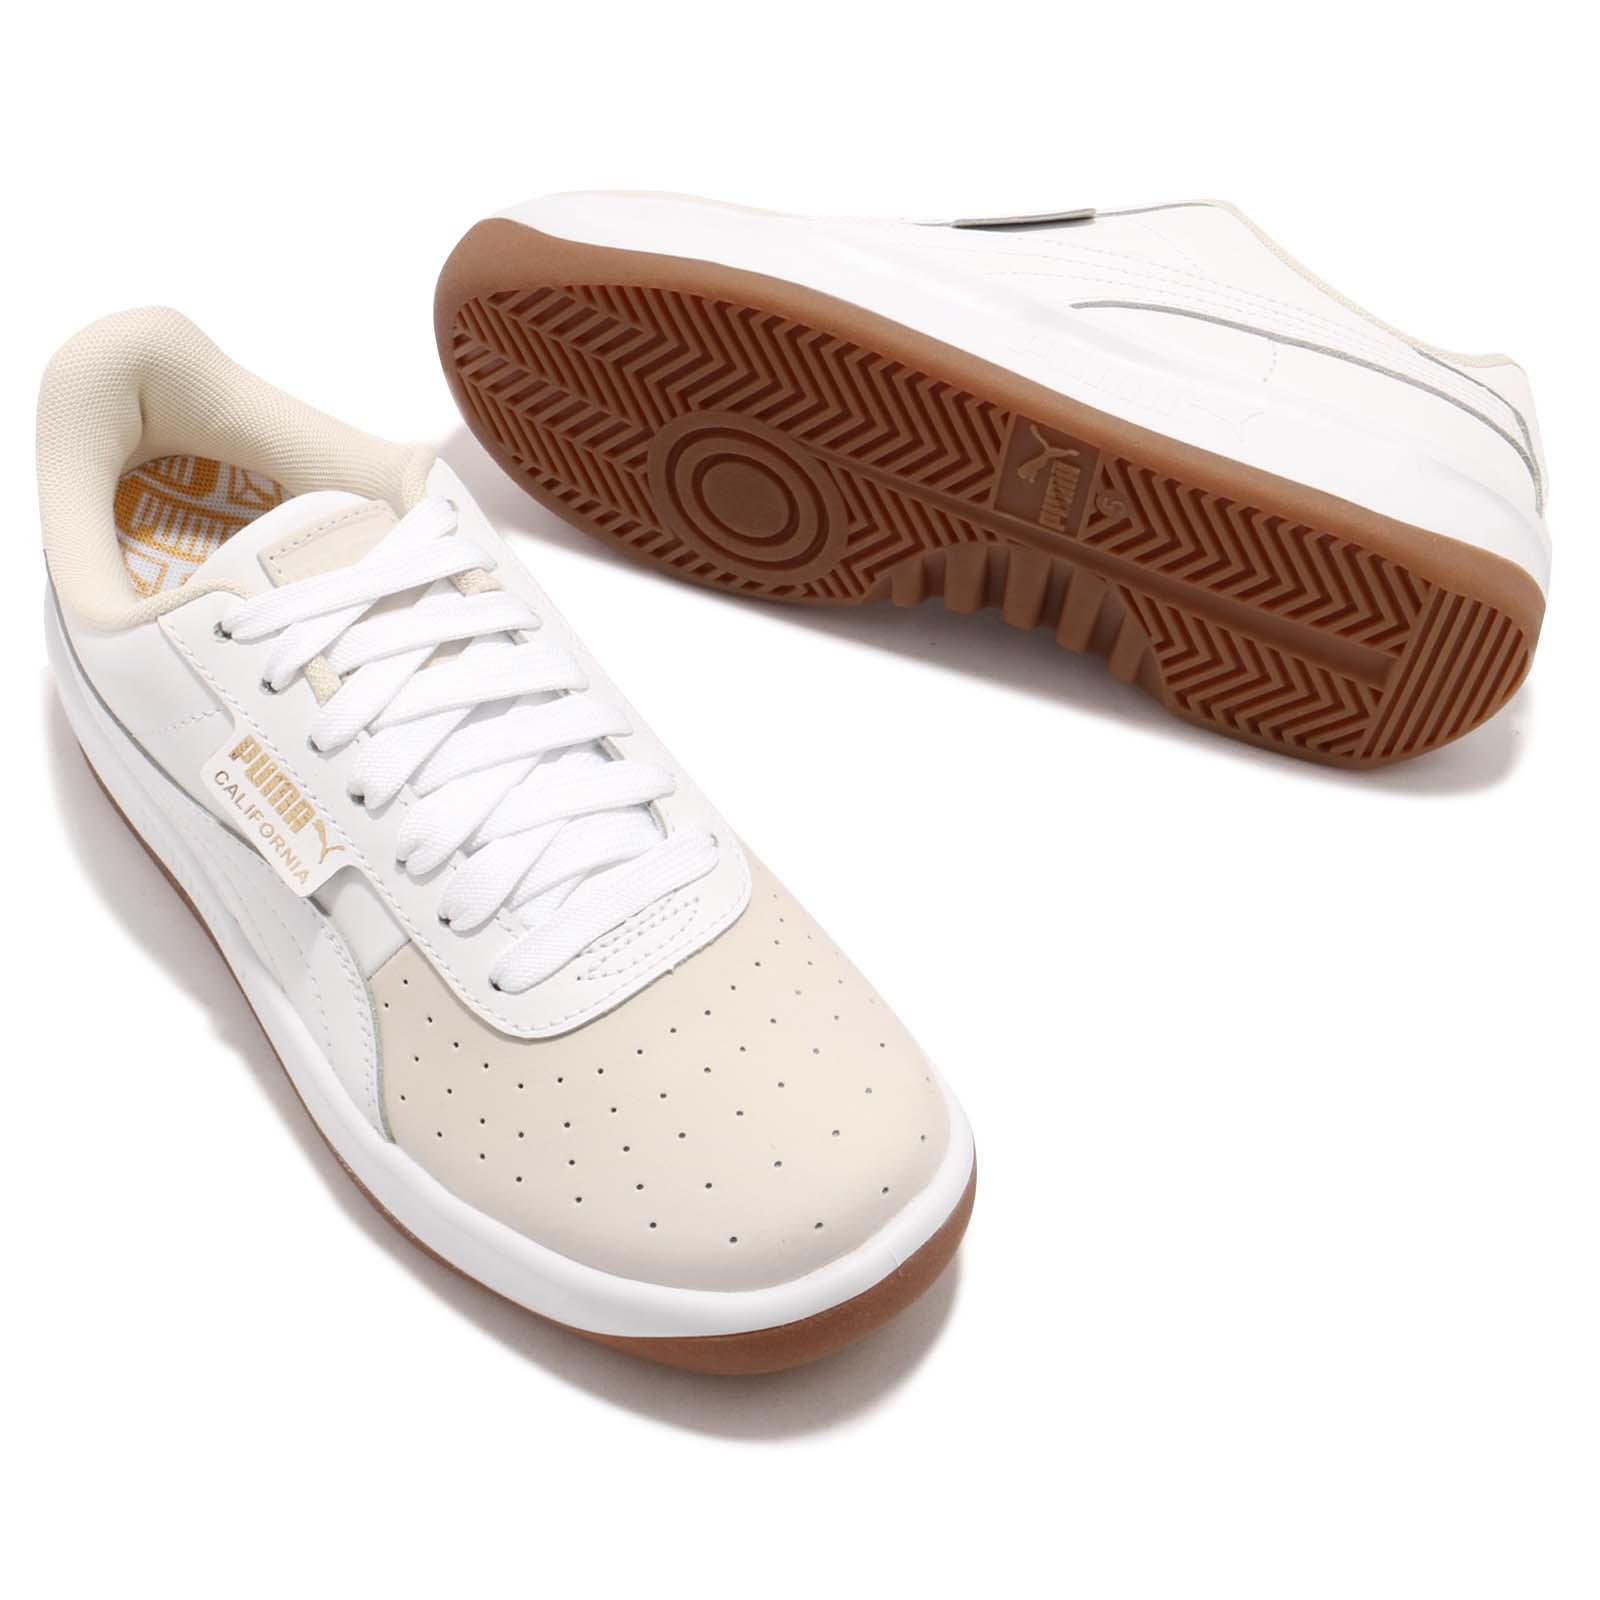 07587c26d7f0 Puma California Exotic Wns White Gold Gum Women Casual Shoes ...